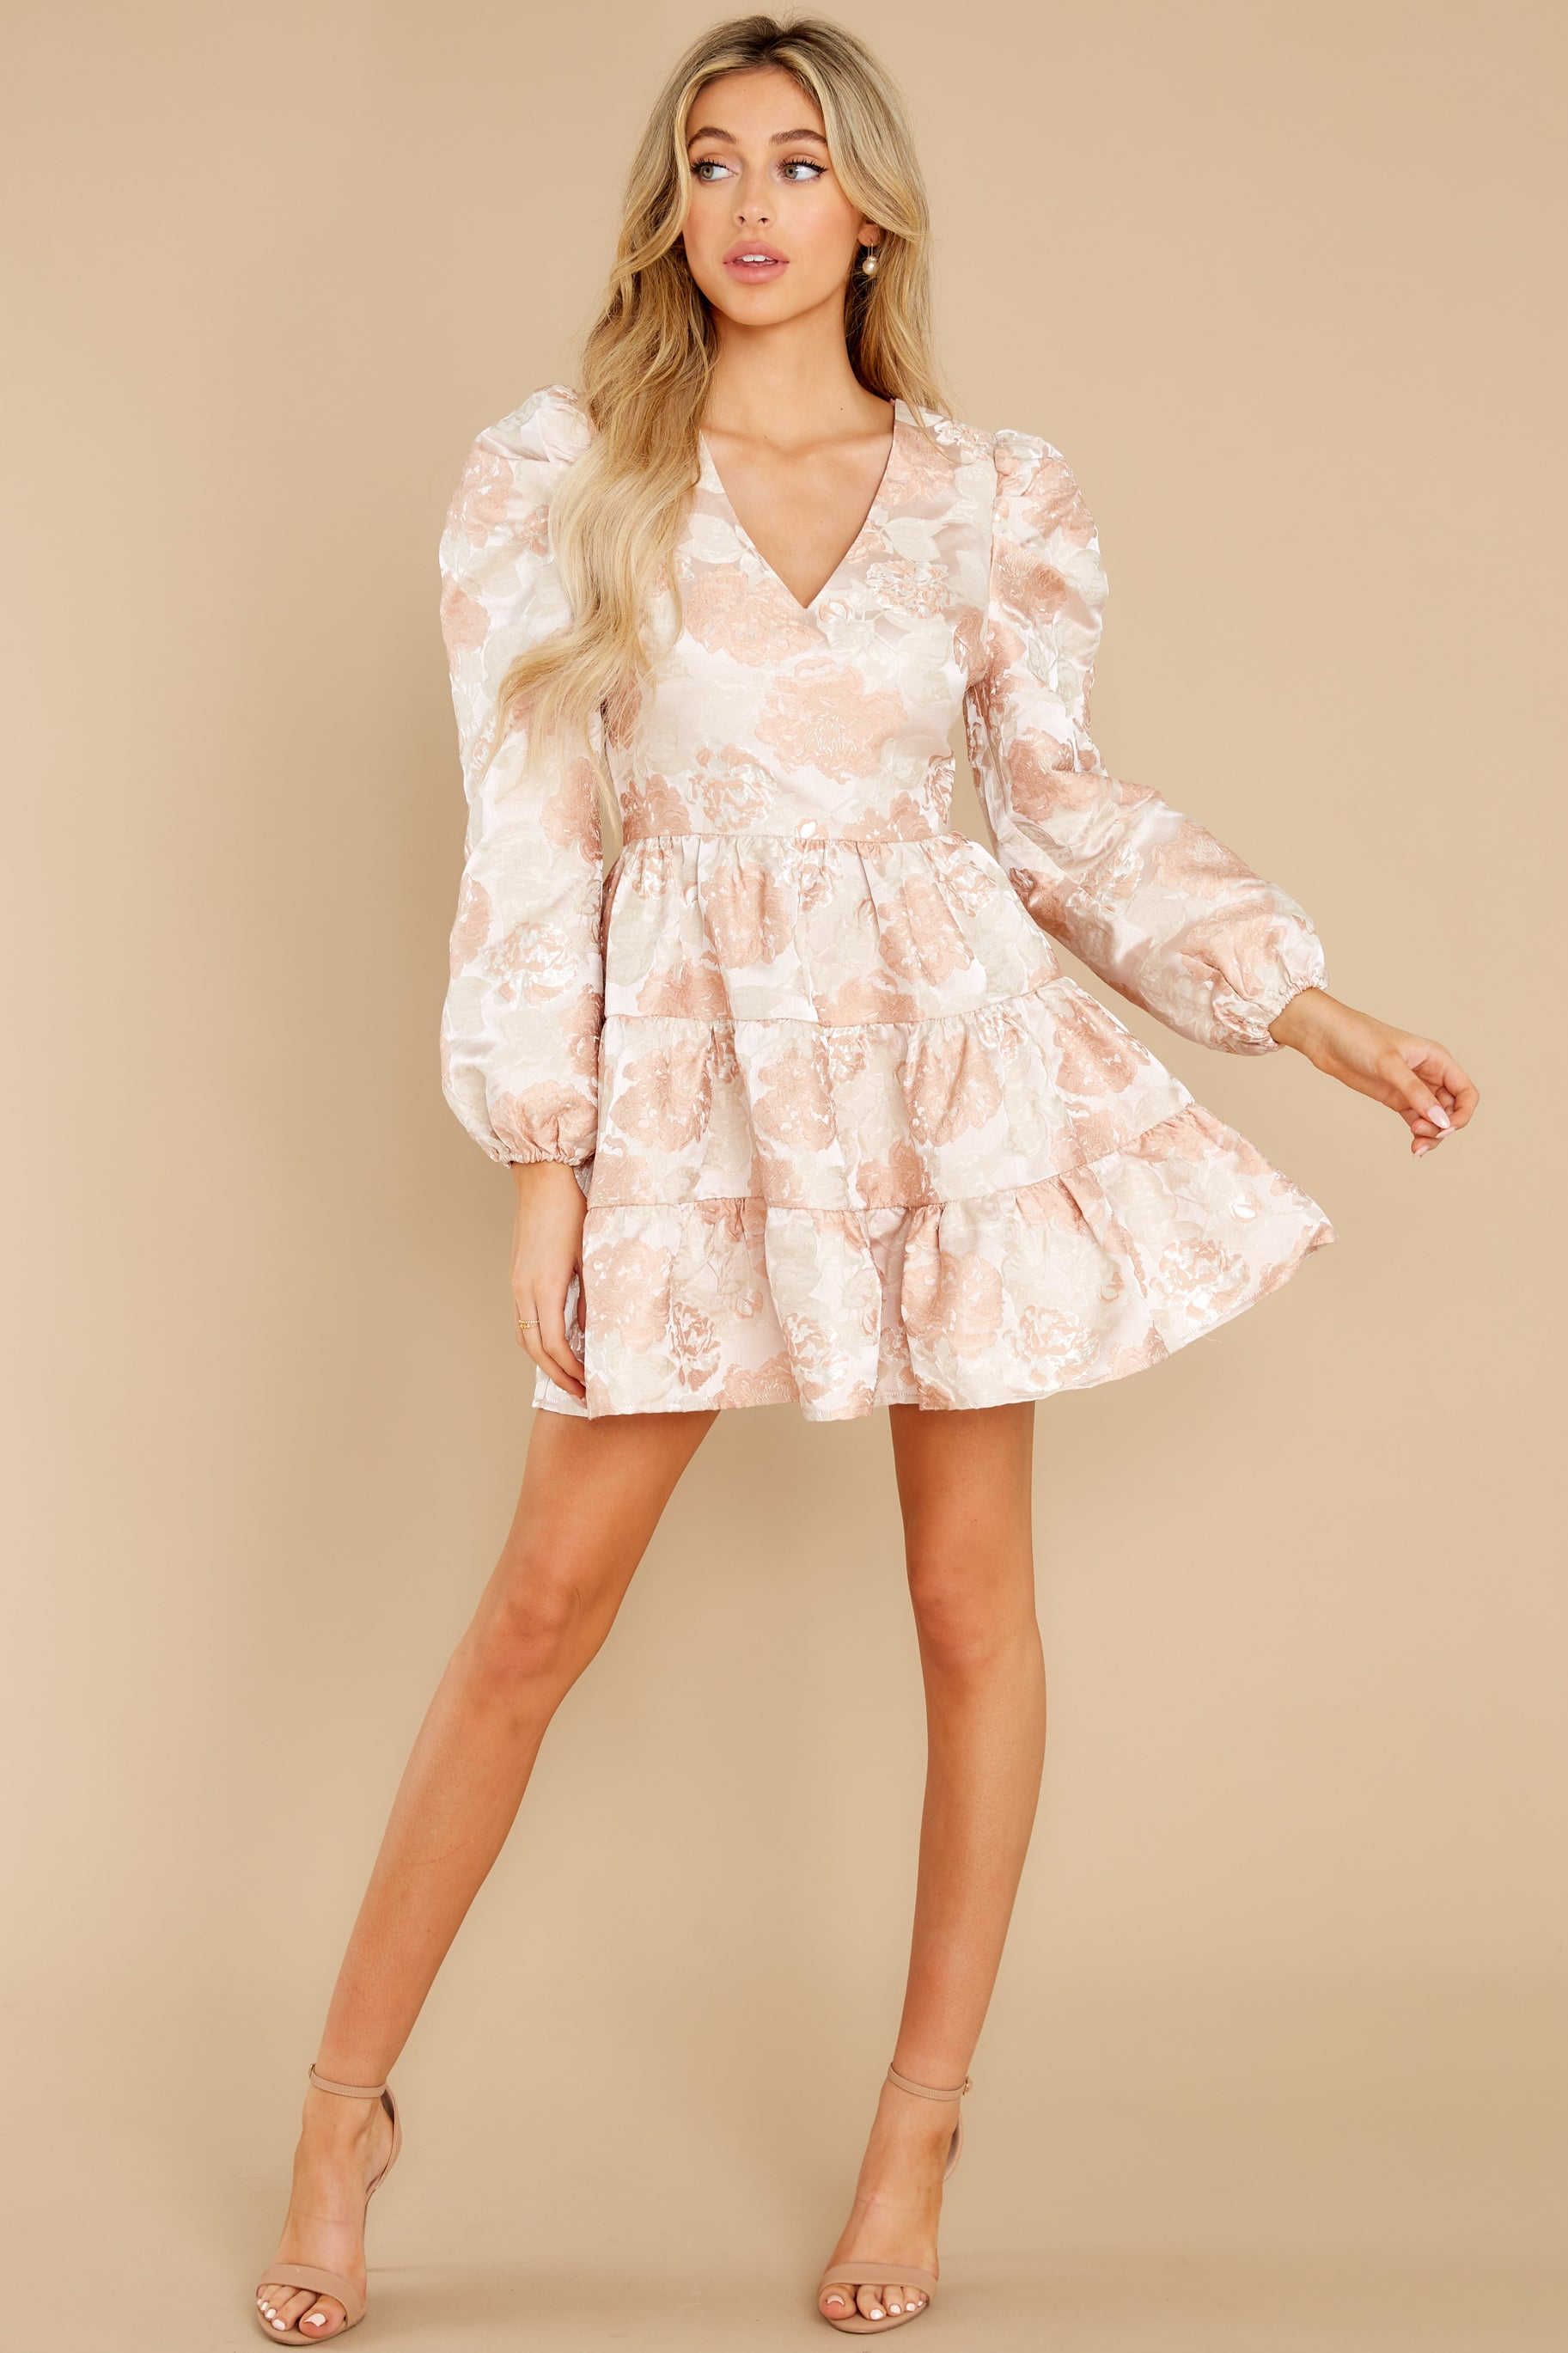 4 Celebratory Cheers Blush And Beige Floral Print Dress at reddress.com